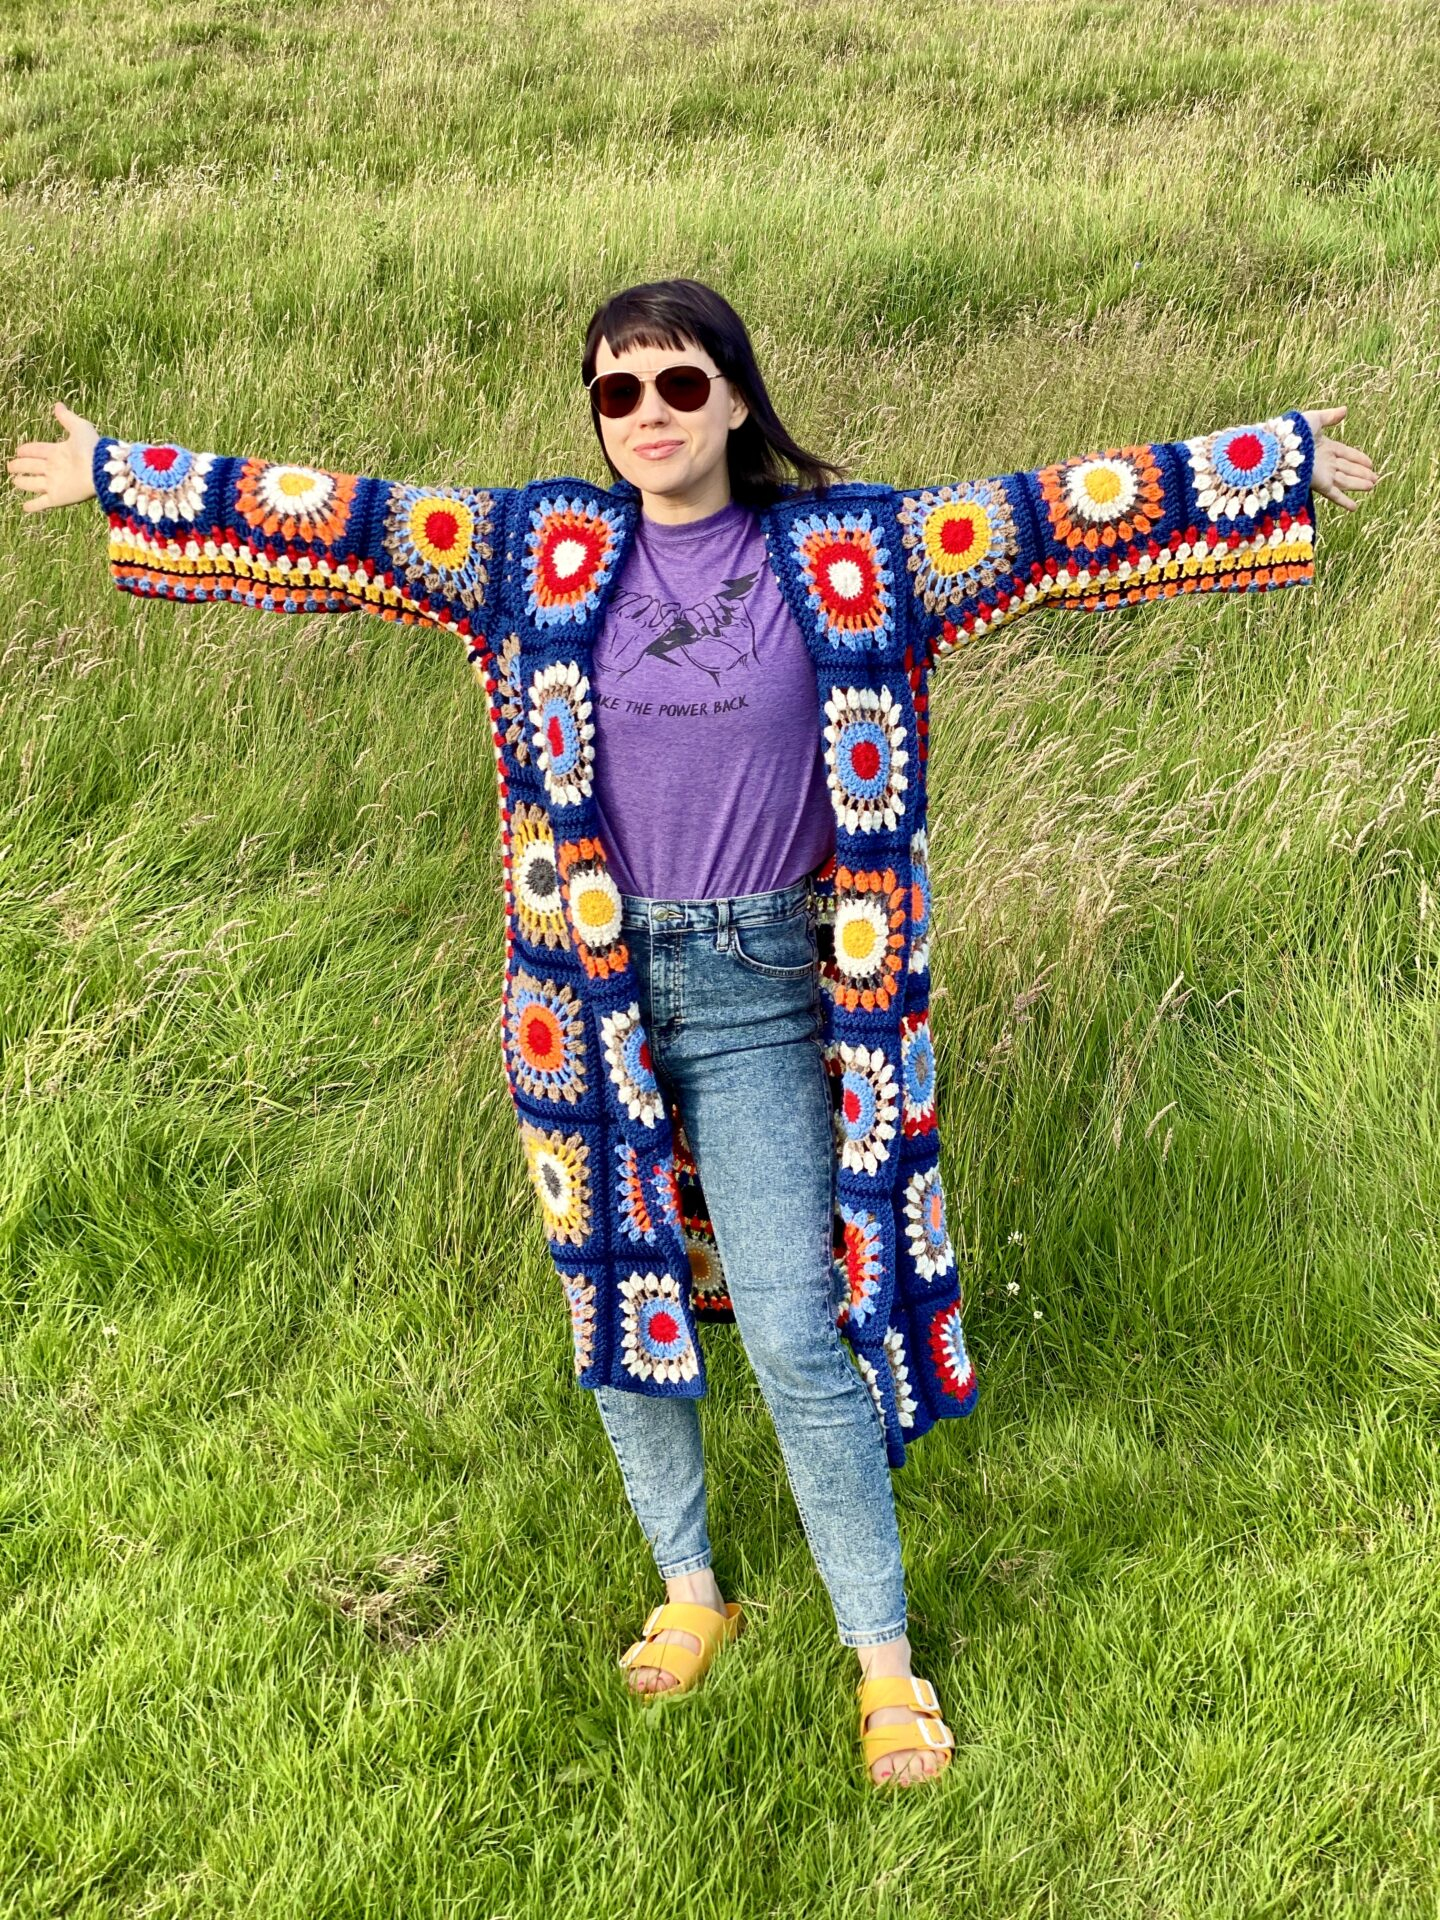 A brunette woman wearing sunglasses and a colourful 70s style crochet Rebecca Cardigan stood in a field with her arms spread wide.